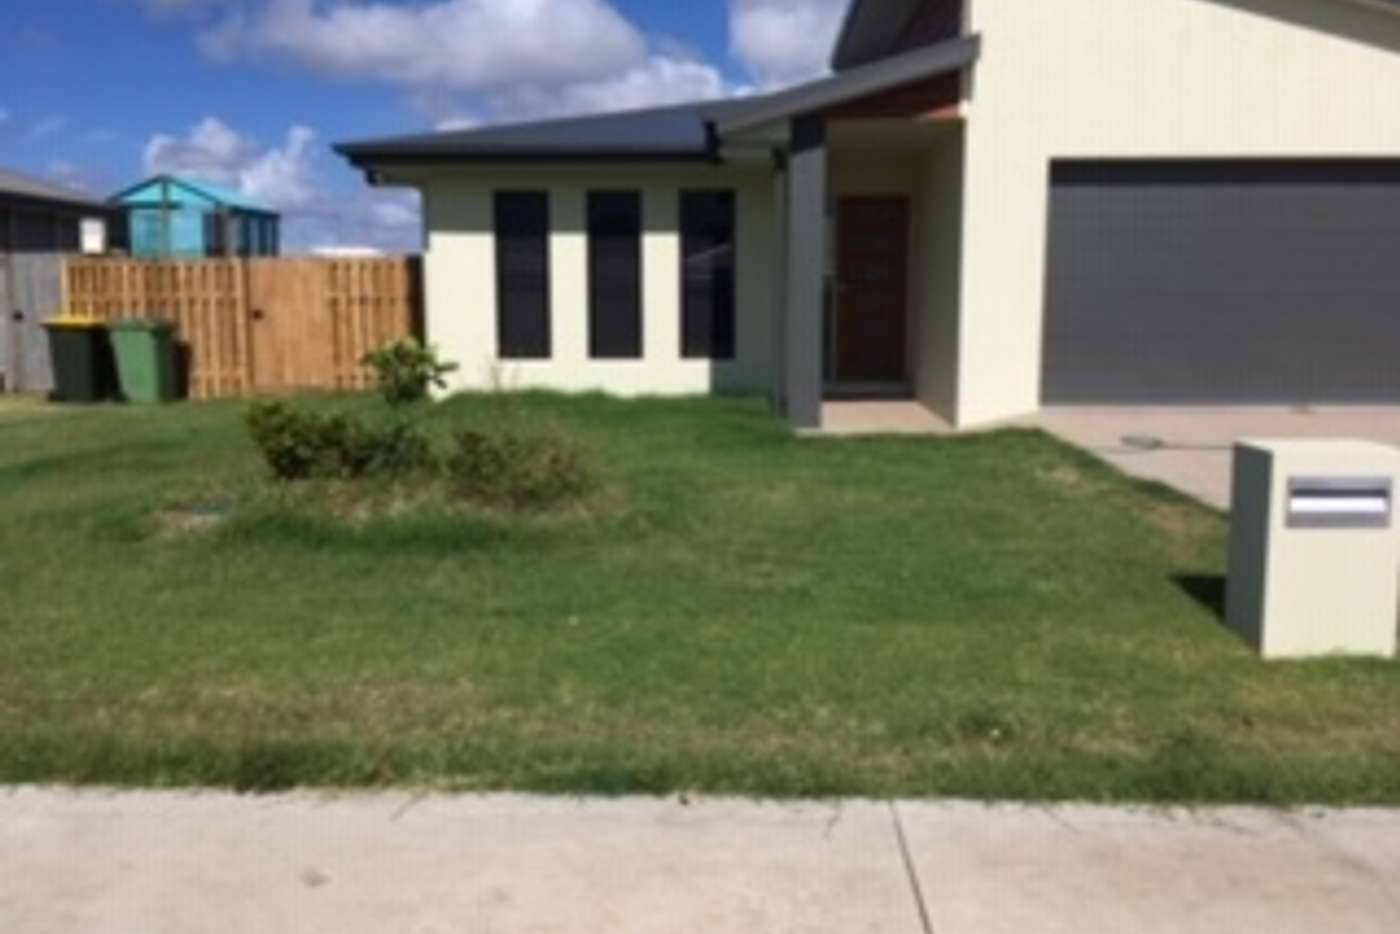 Main view of Homely house listing, 5 Hamilton Avenue, Bowen QLD 4805